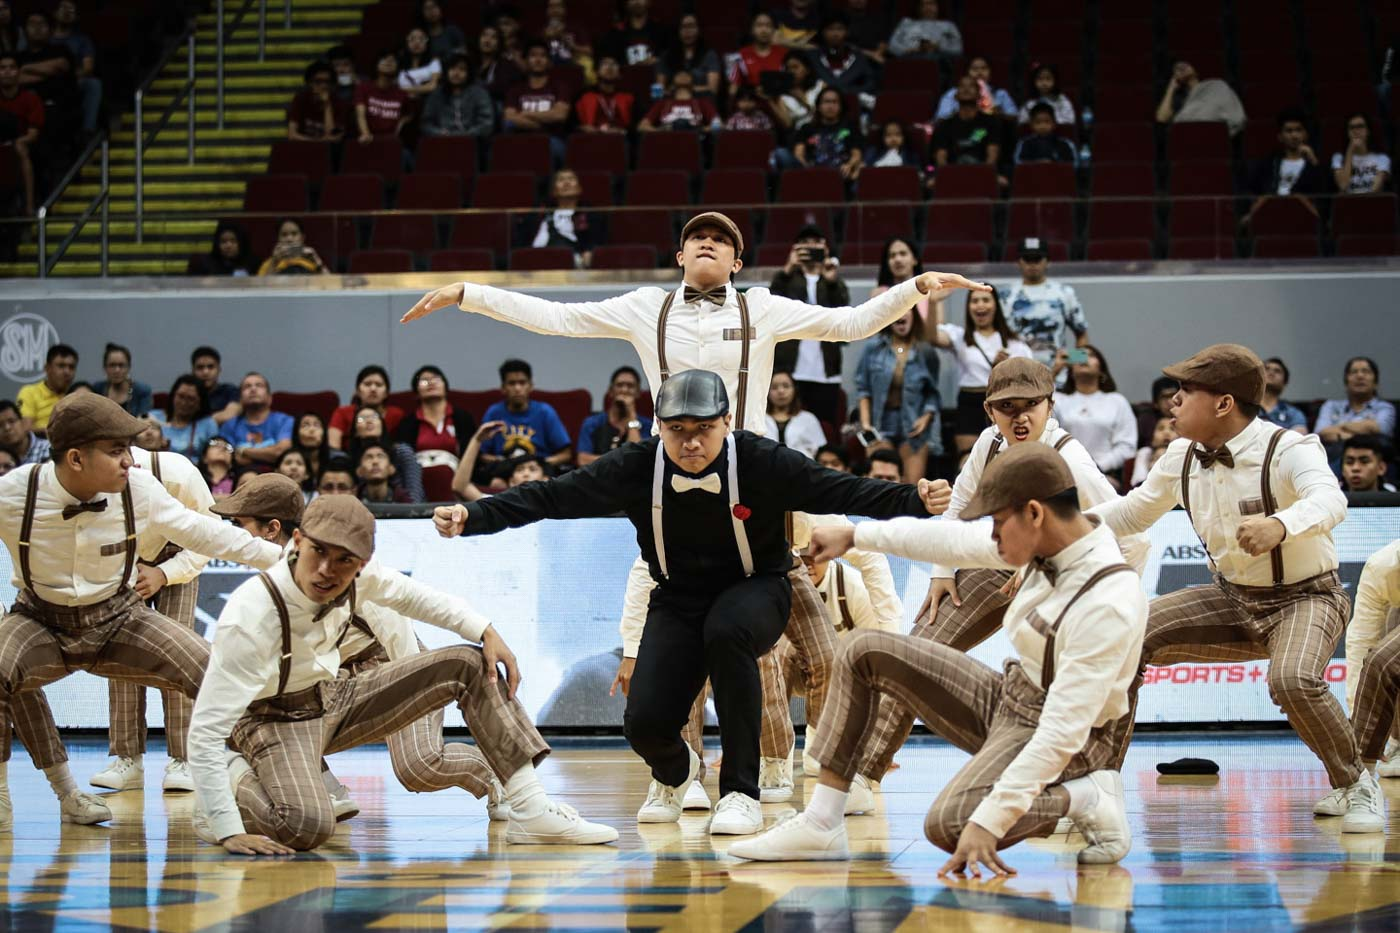 IN PHOTOS: UAAP Streetdance Competition 2018